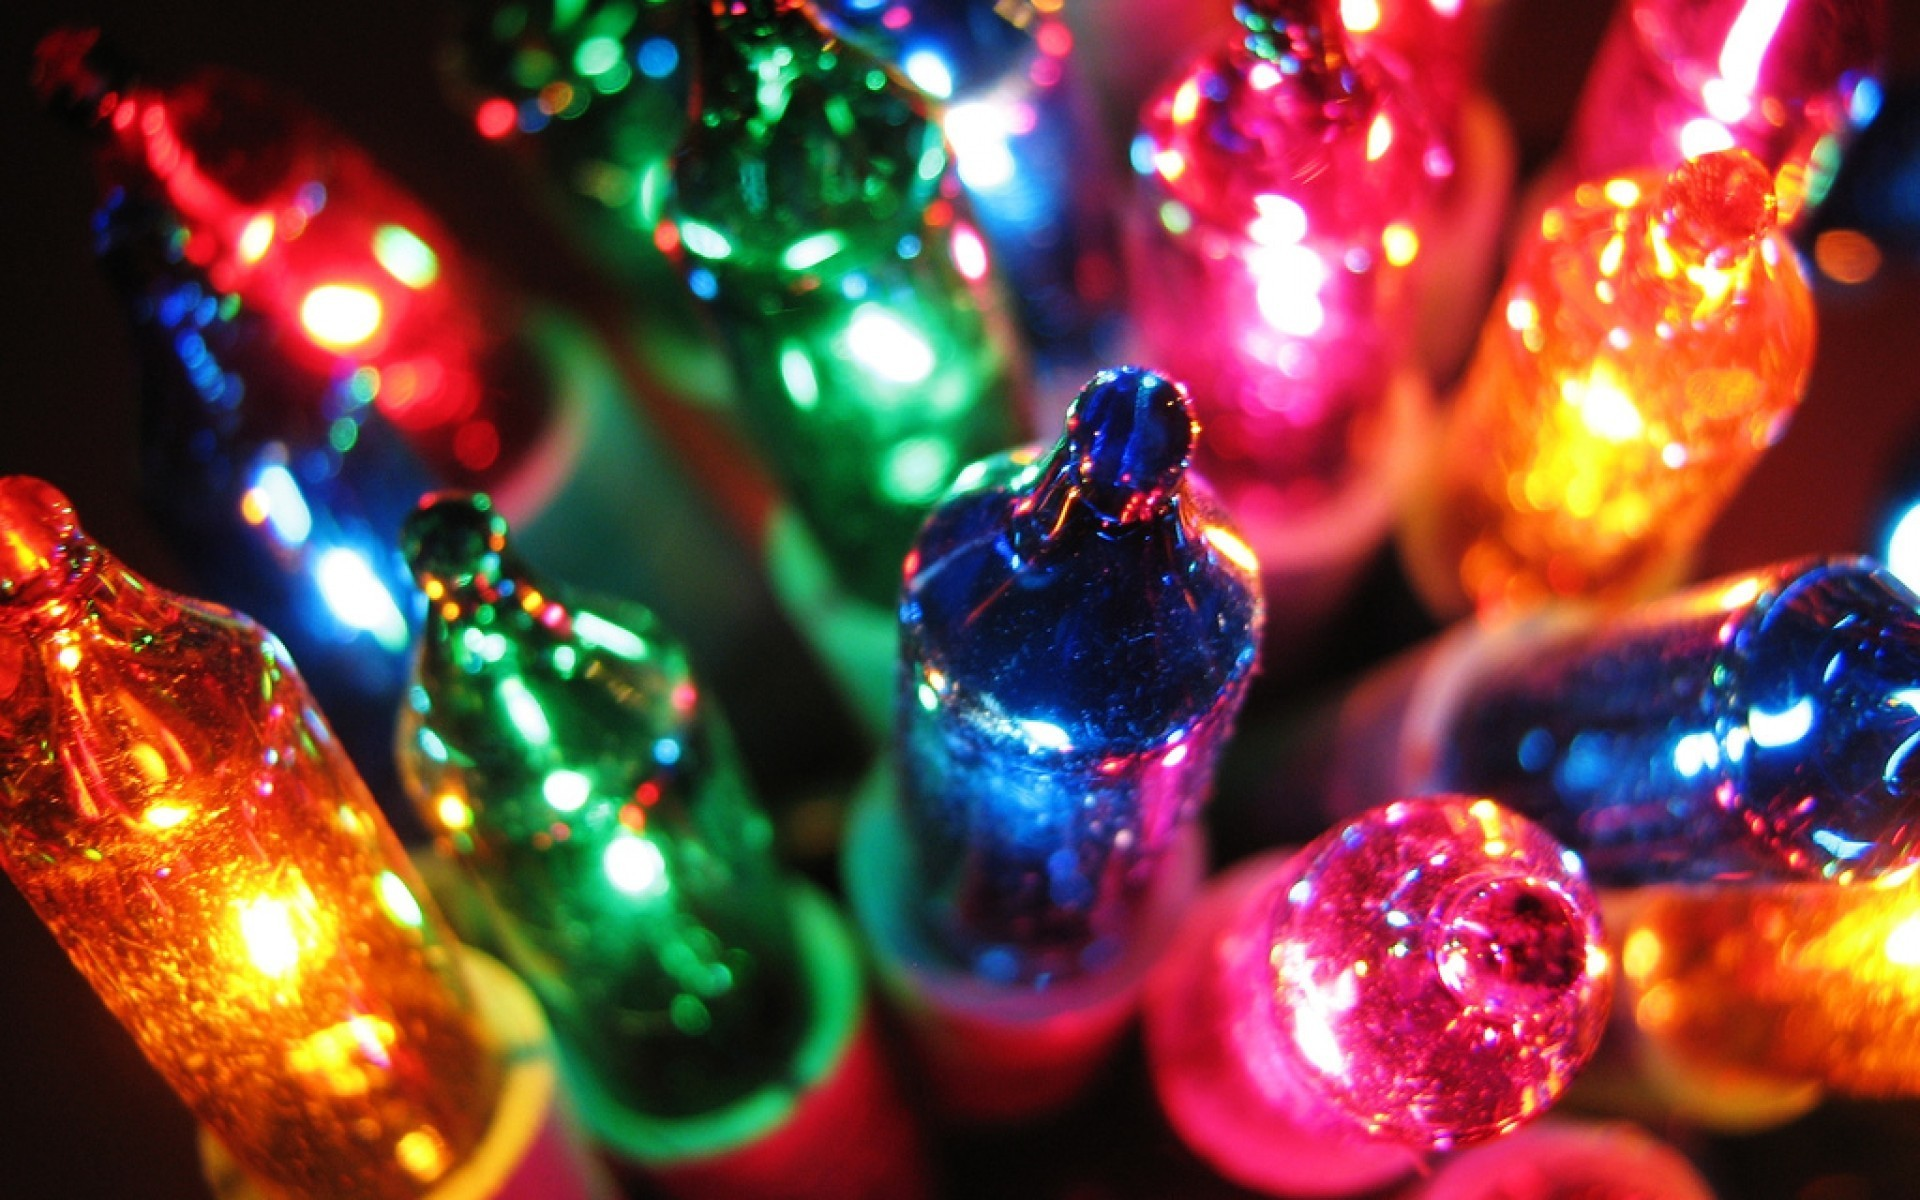 Colorful christmas lights desktop background hd wallppaer.